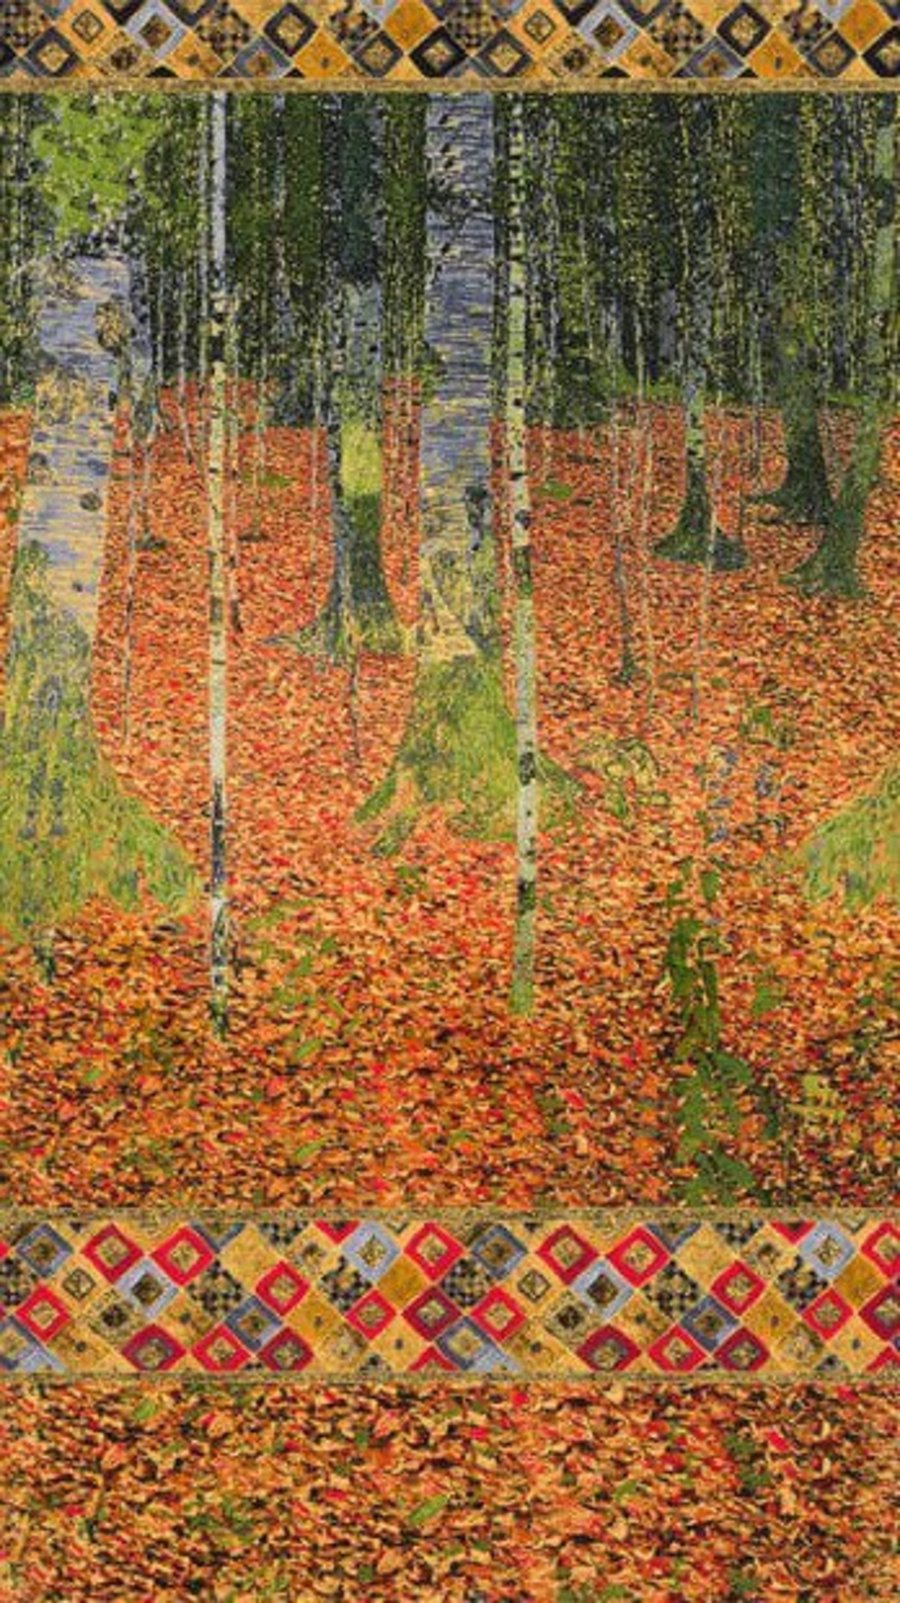 Details About Robert Kaufman Digitally Printed Fabric Panel Gustav Klimt The Birch Wood Autumn